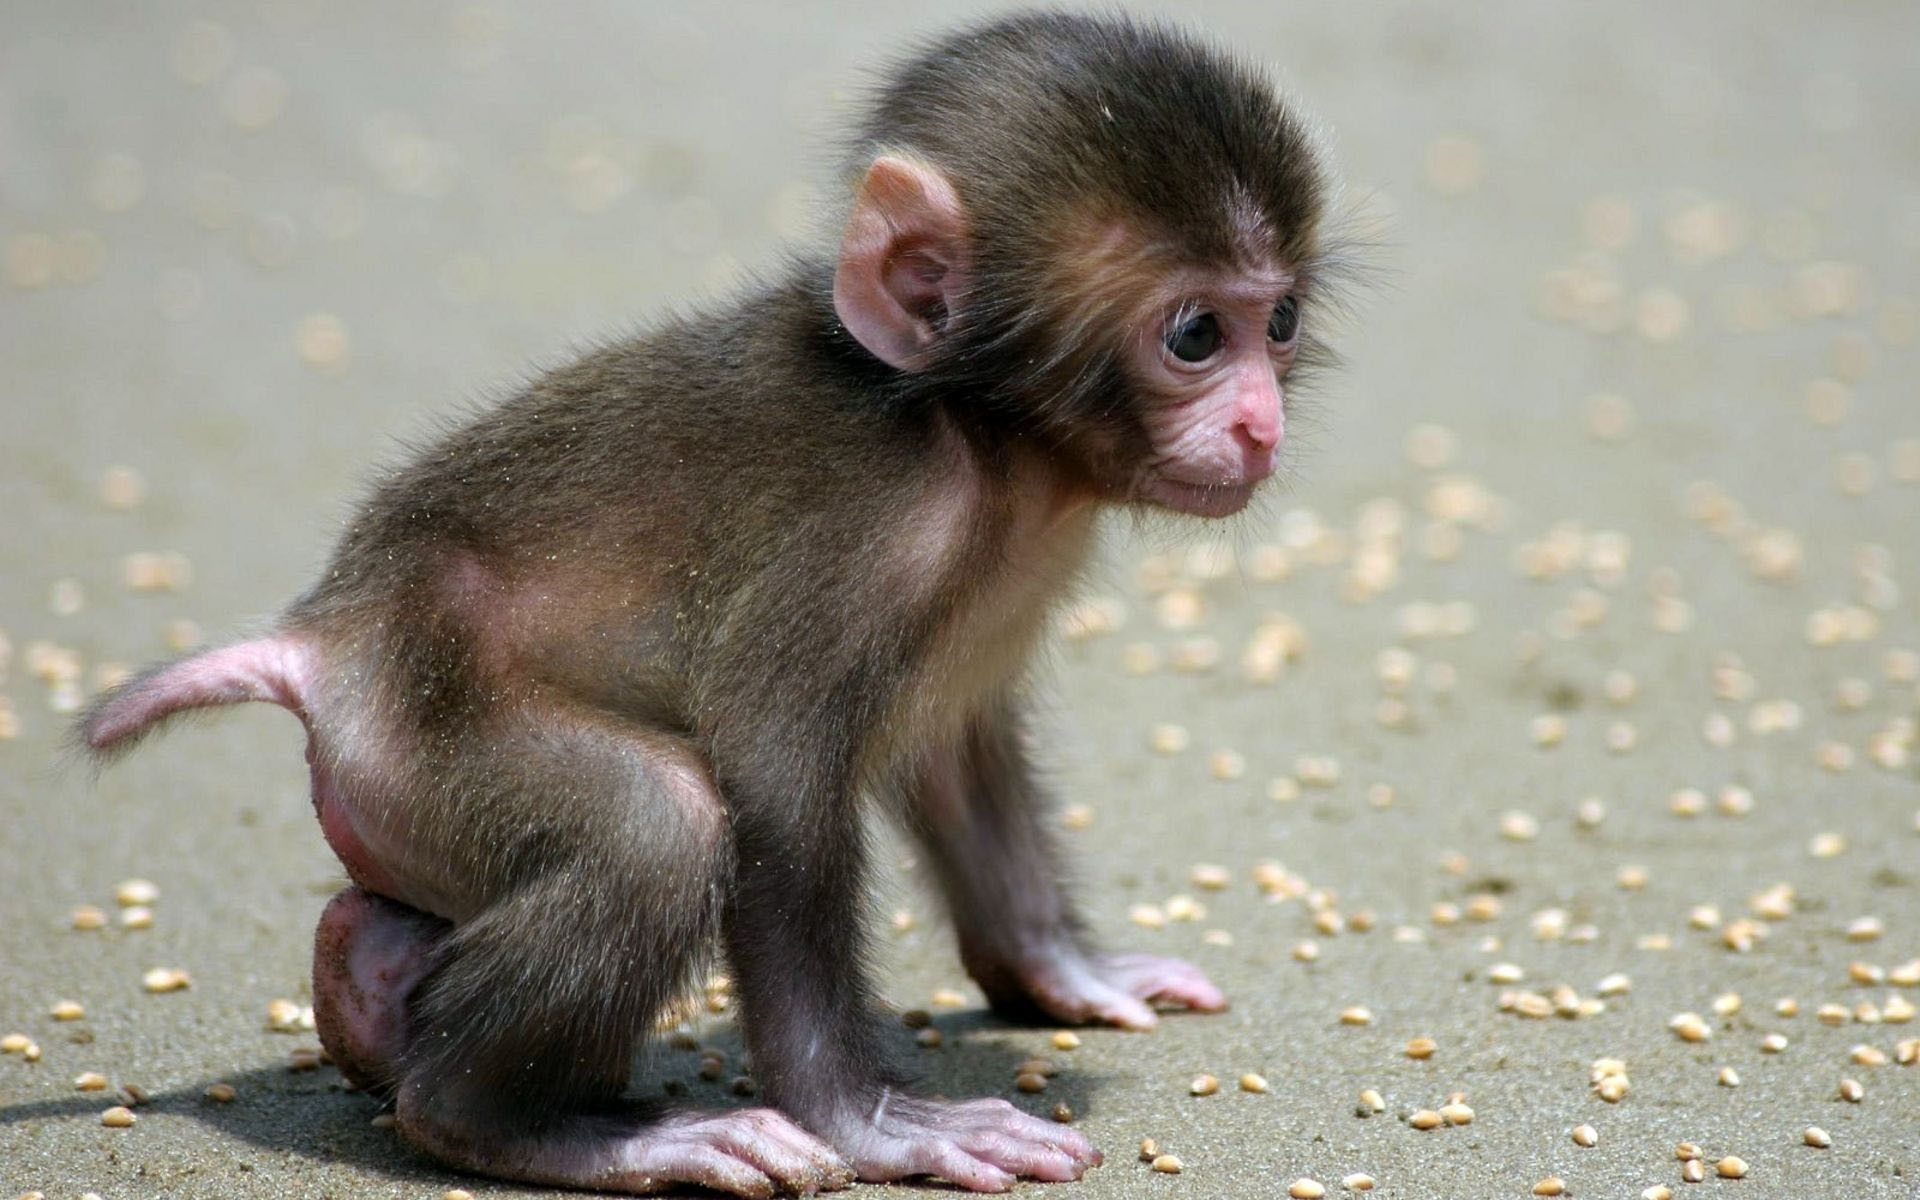 cute baby animals | Wallpaper, desktop, monkey, baby, search, animals, cute (#169207)